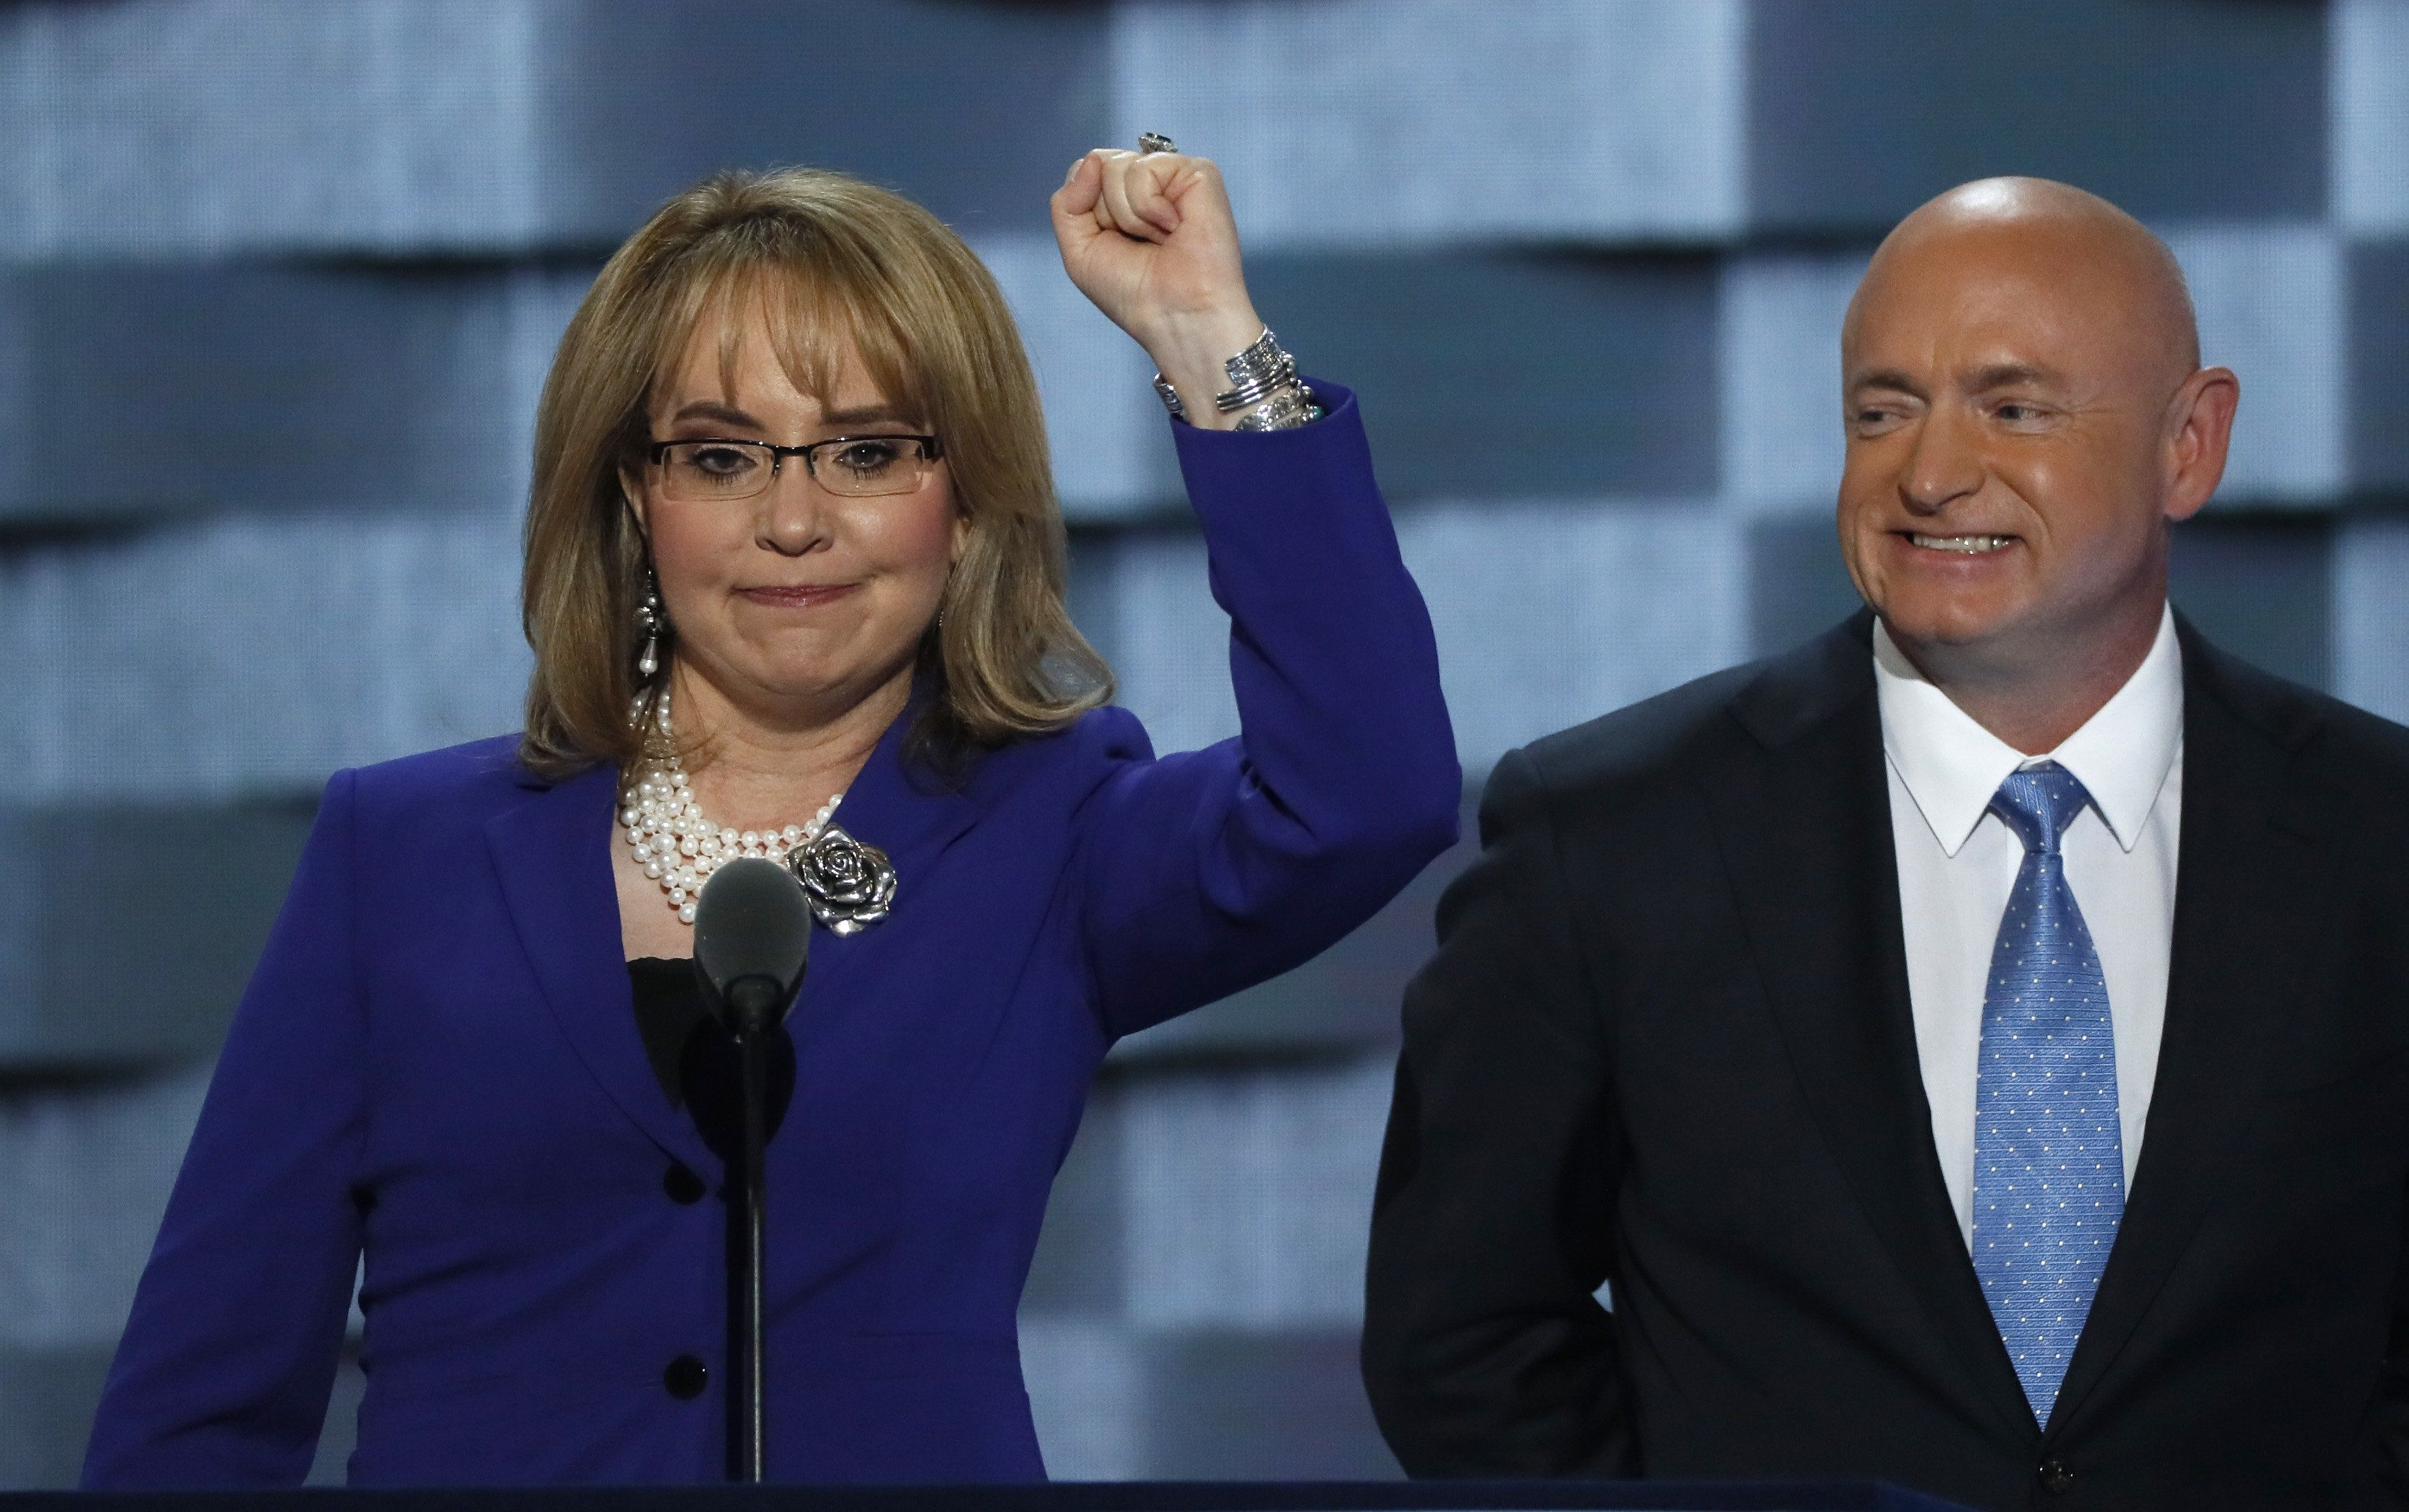 Former U.S. Representative Gabby Giffords, Victim Of A Shooting Attack  While She Was A Member